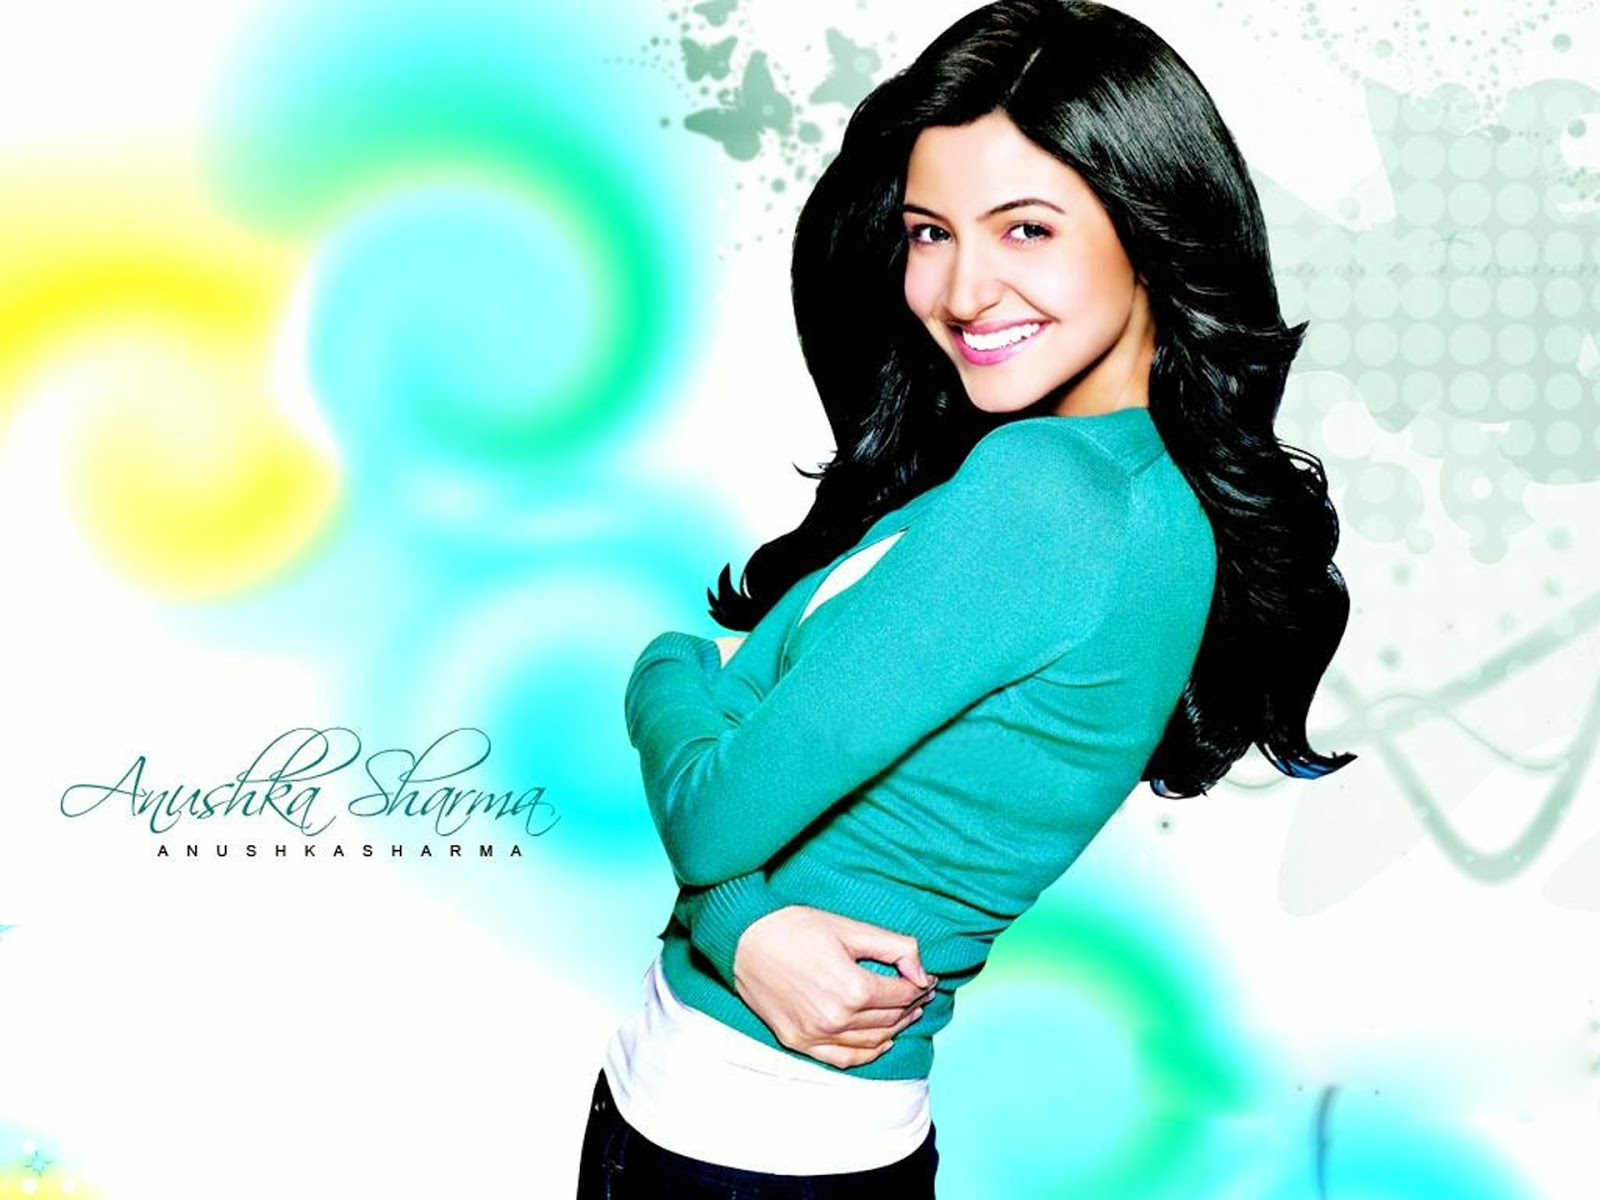 anushka sharma hd wallpapers | unlimited bollywood wallpapers